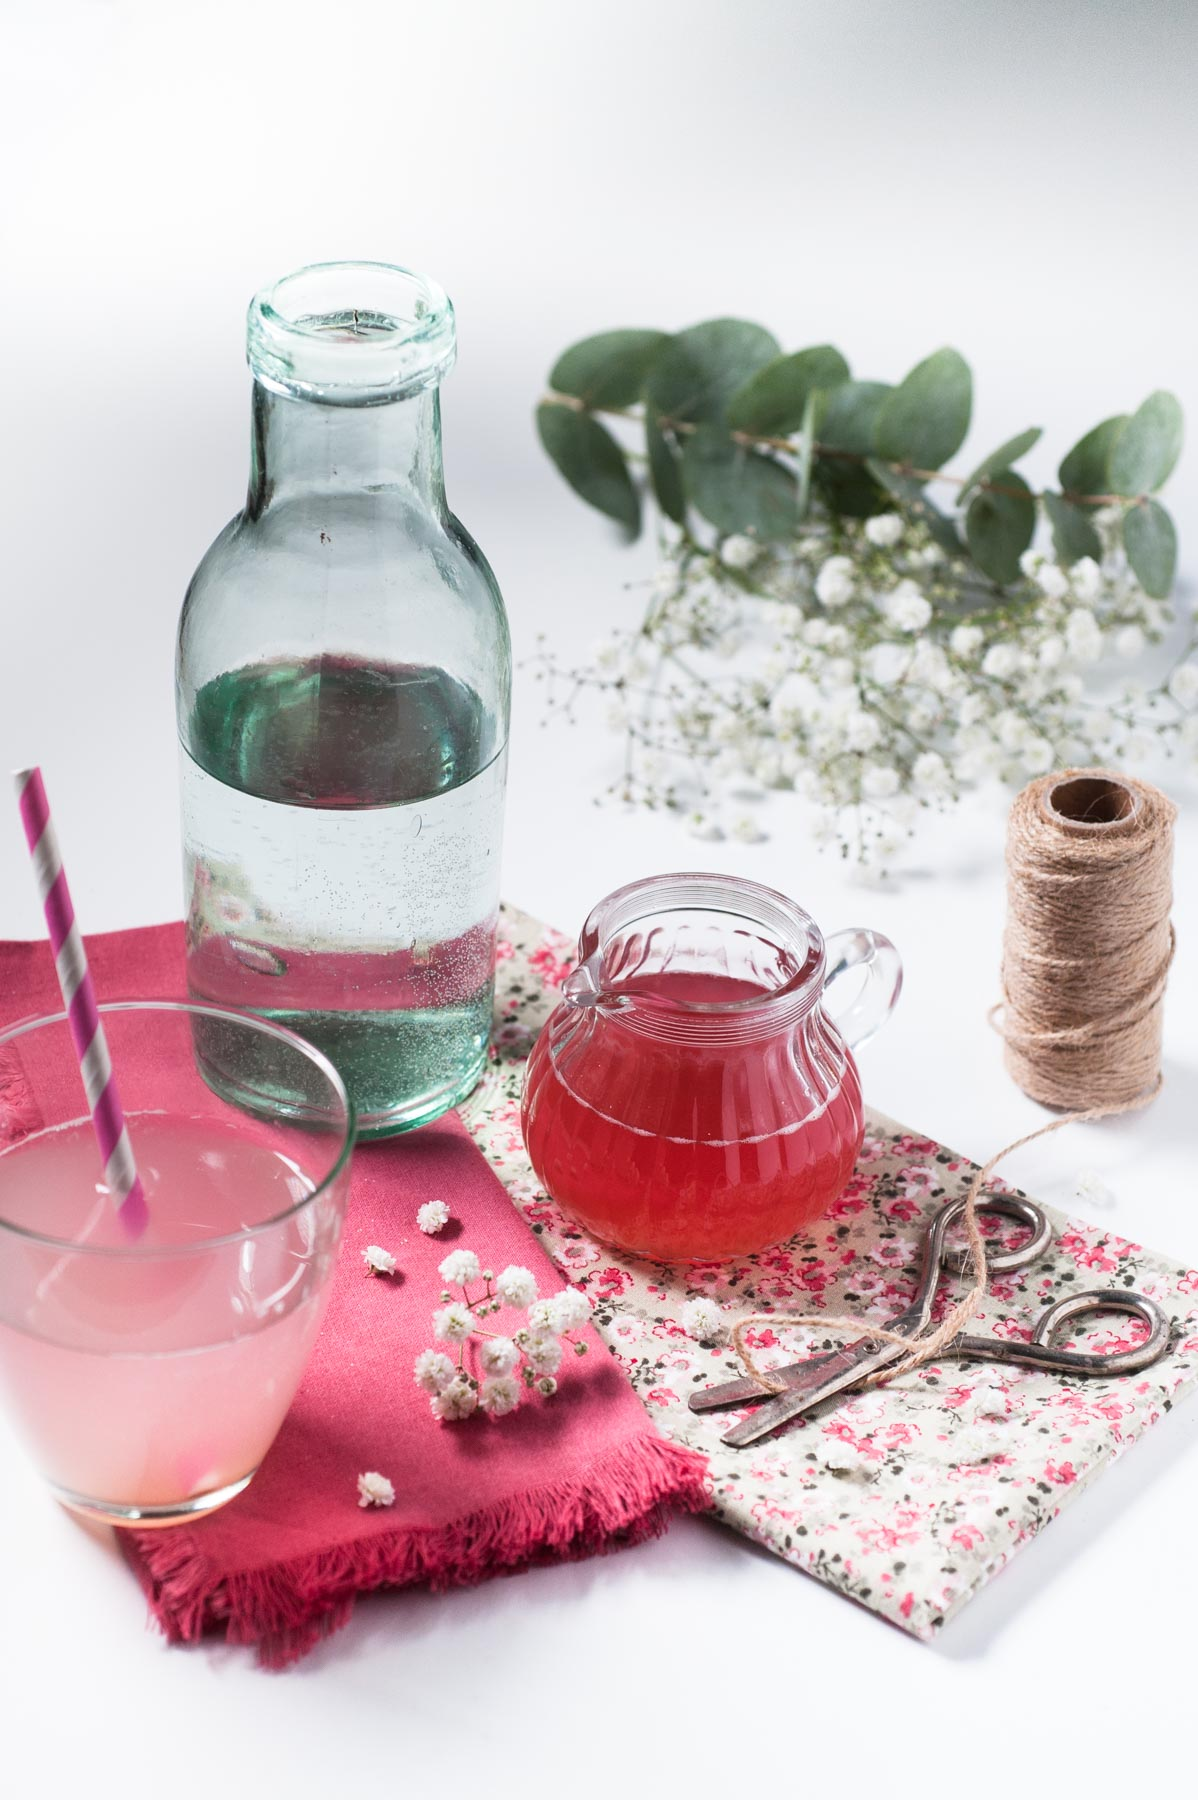 Sirop rhubarbe gingembre